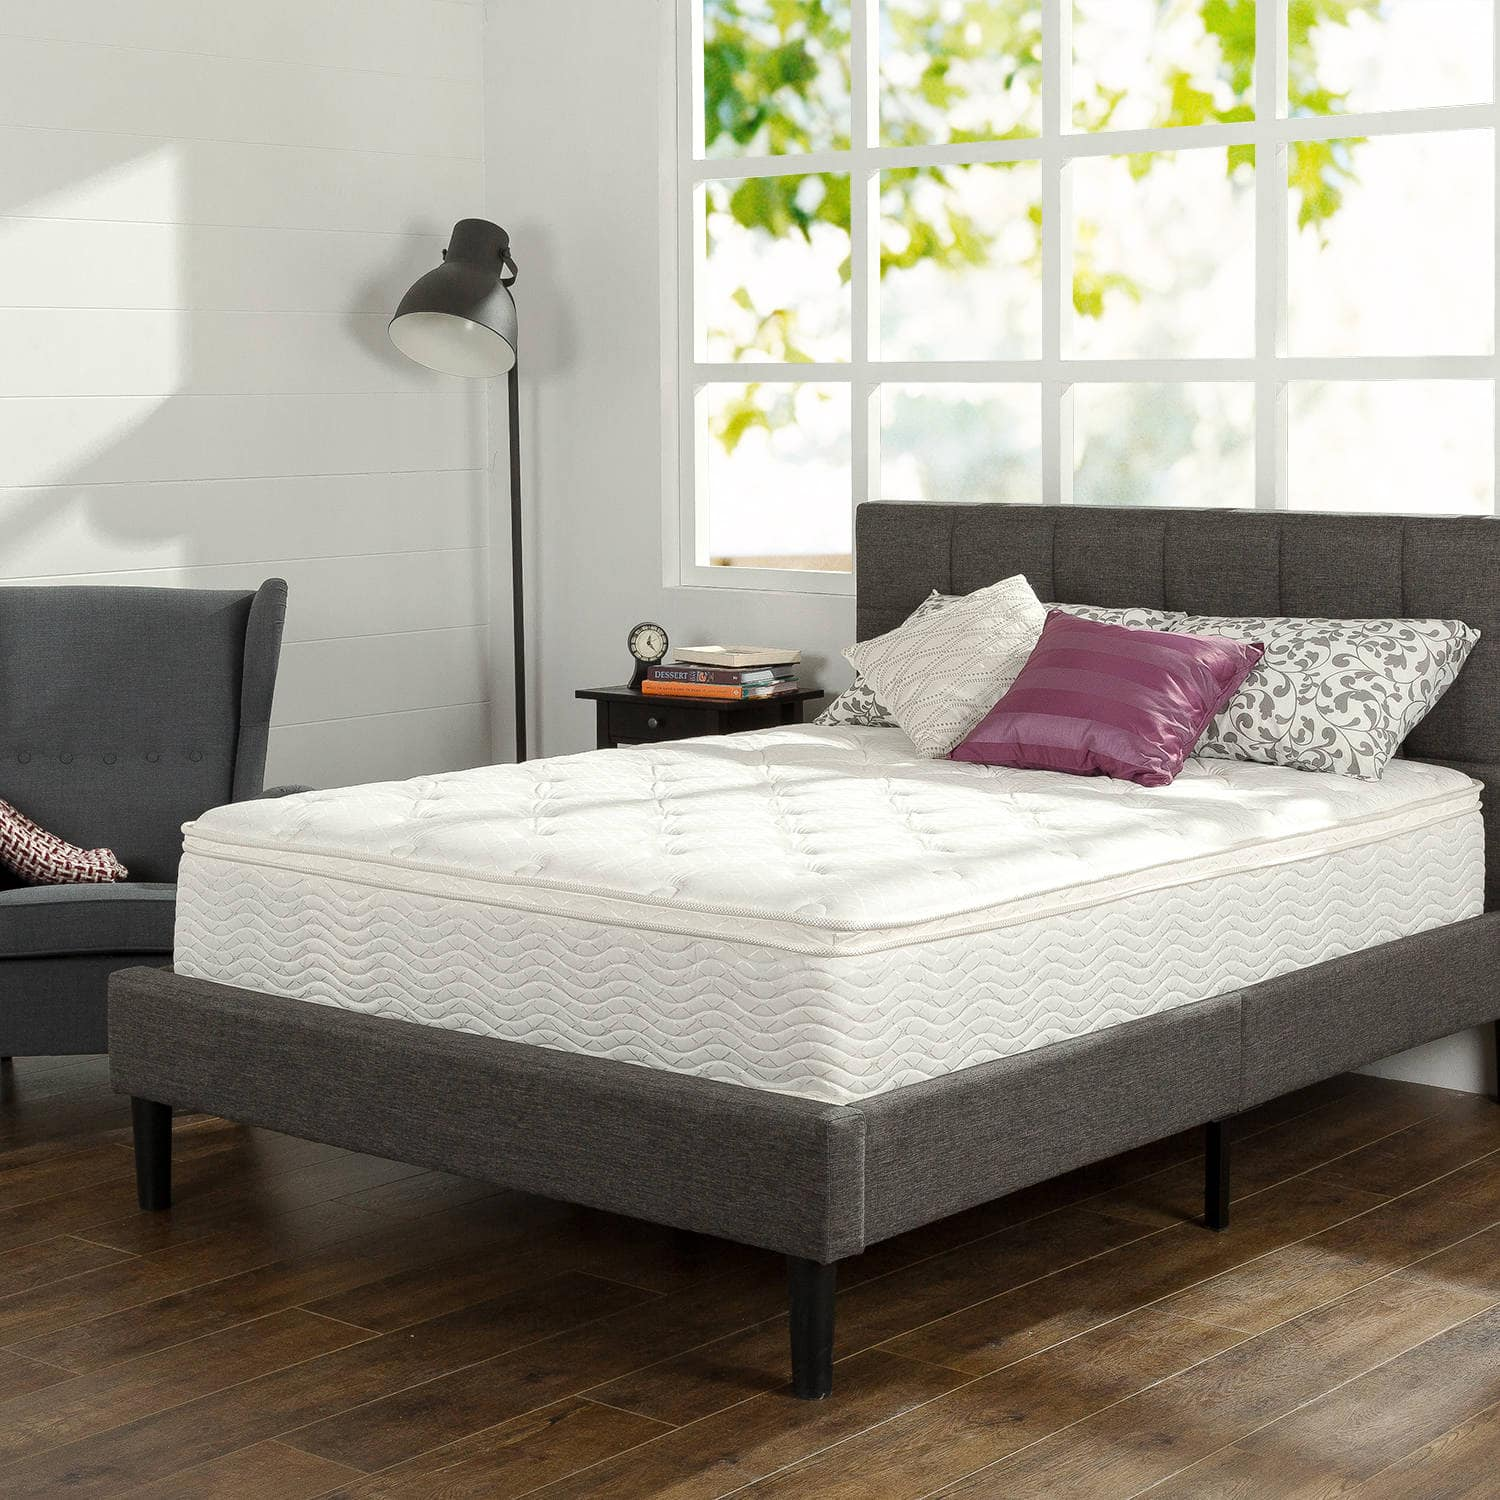 Unique Slumber Comfort Euro Box Top Spring Mattress various sizes Slickdeals net